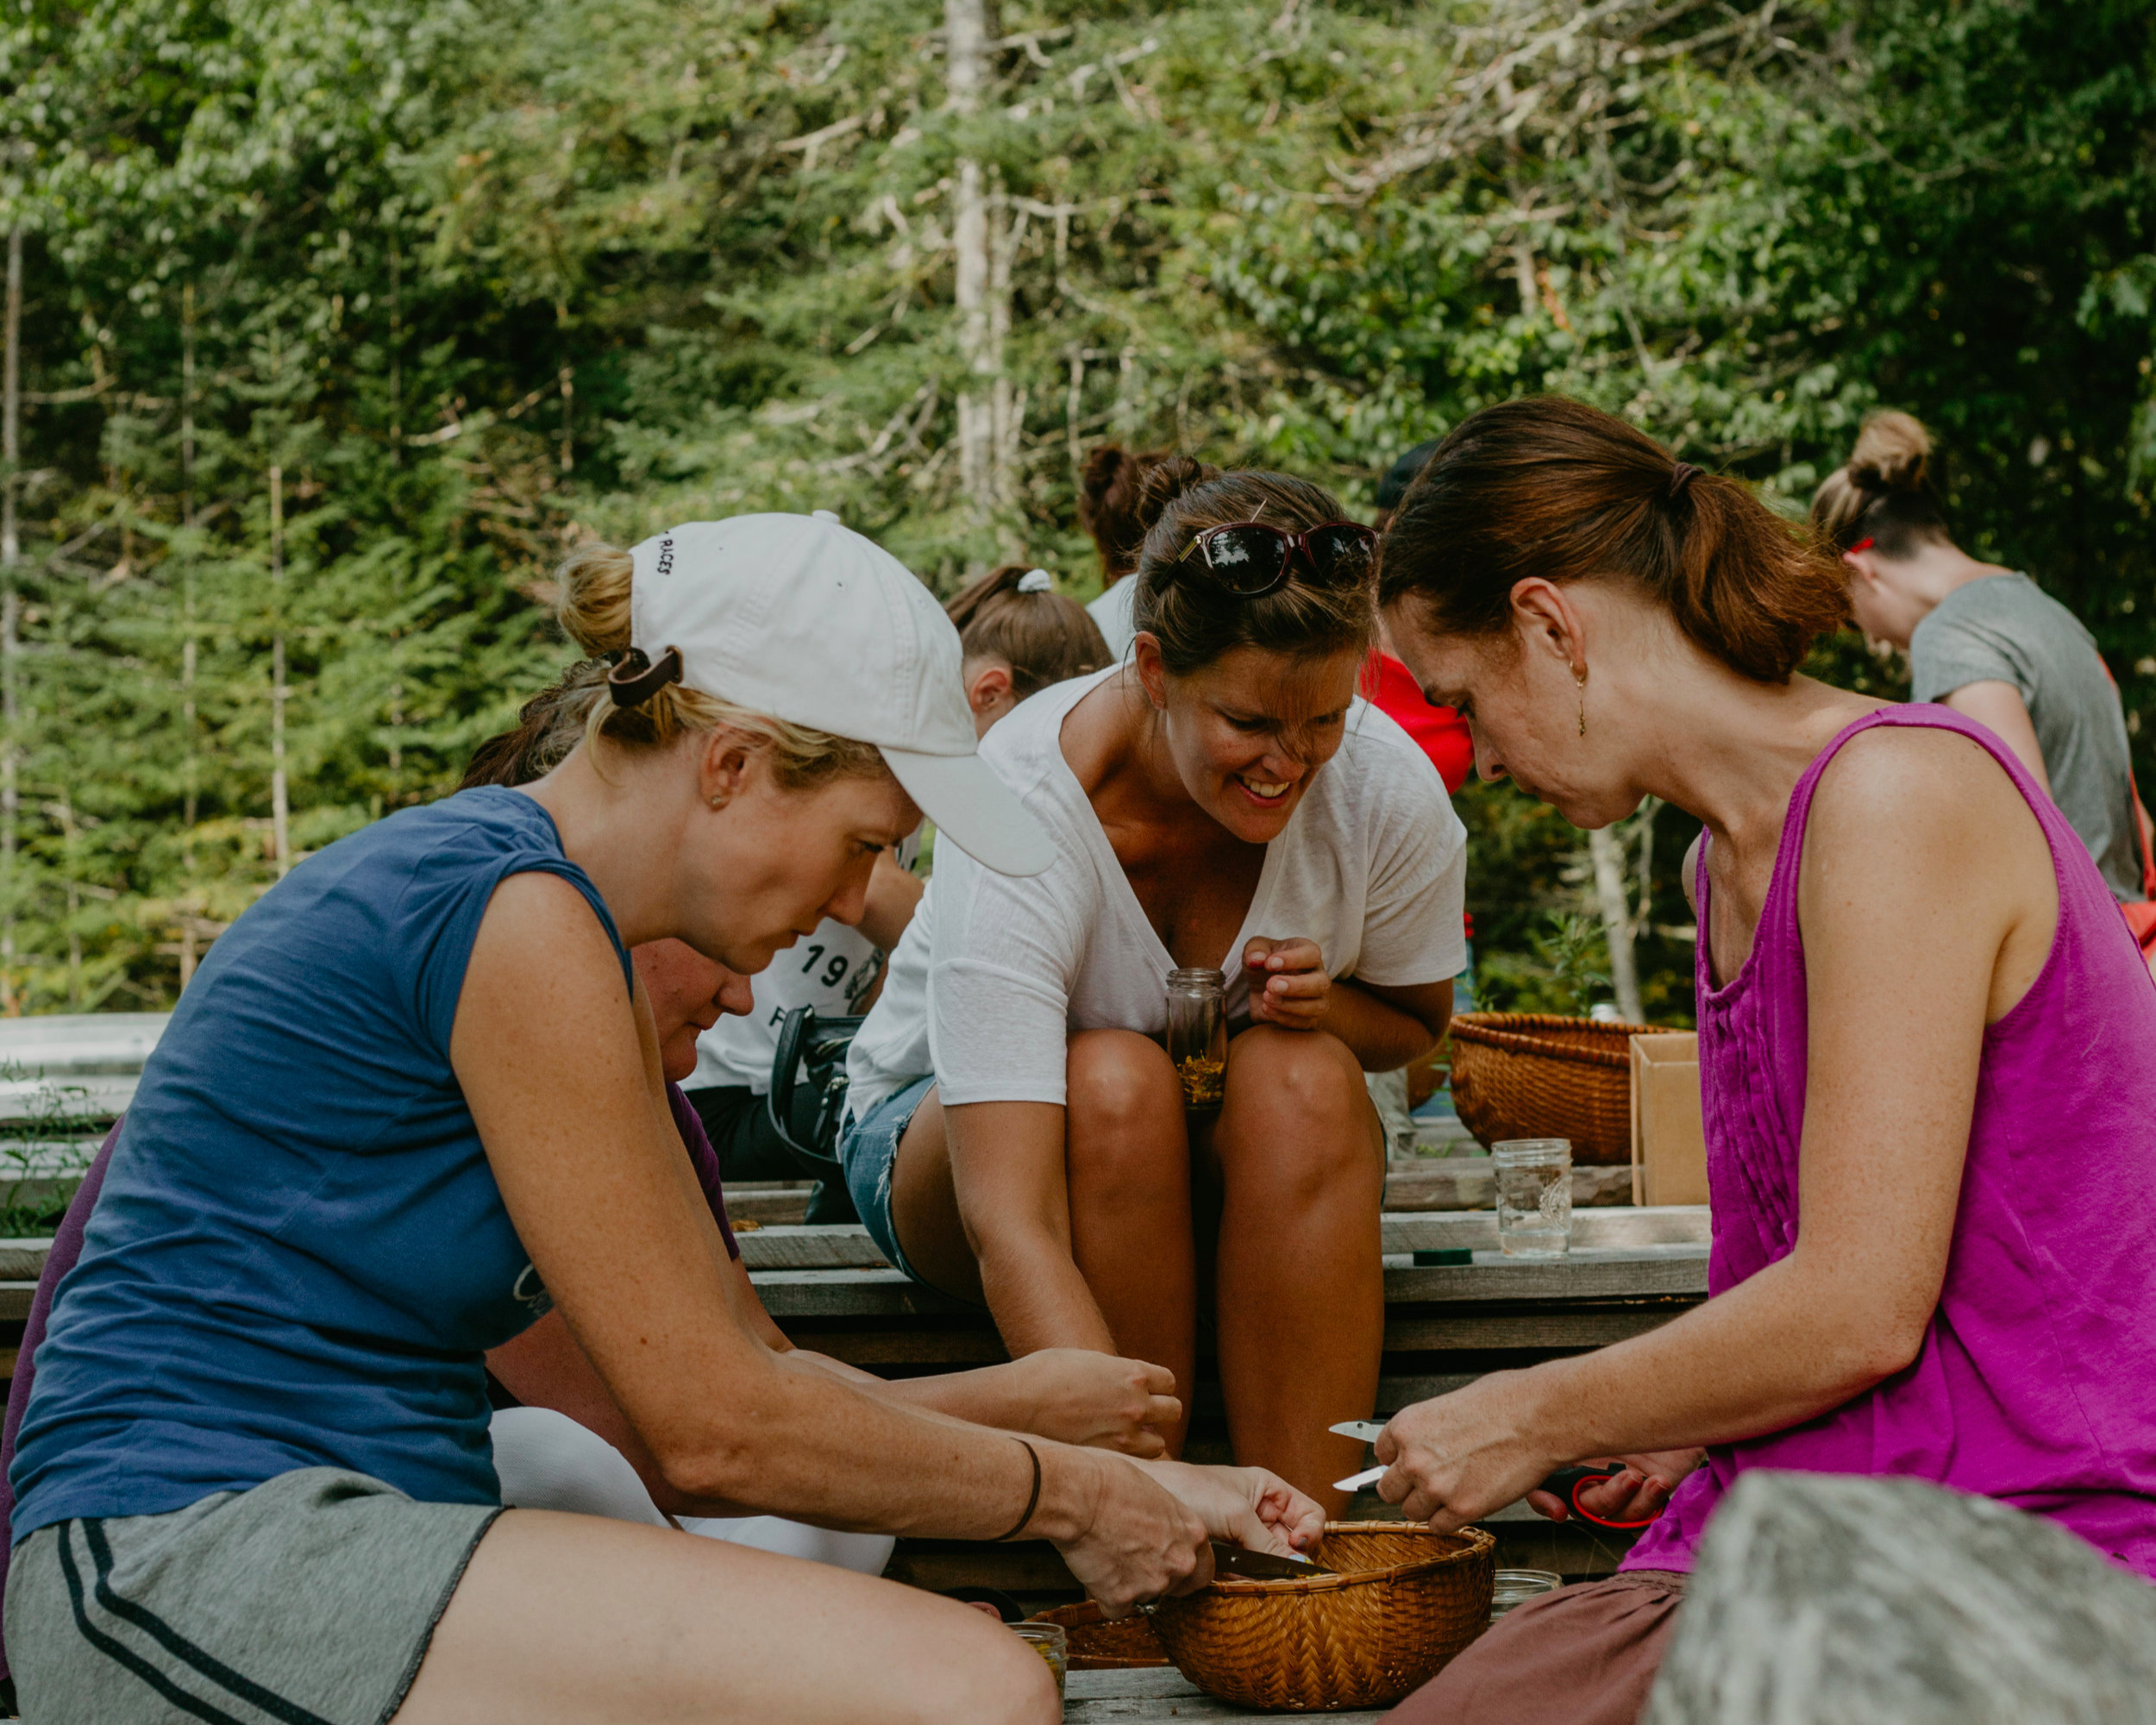 Community Workshops - 2 hour hands-on make and take herbal learning experiences on Deer Isle and the surrounding area.